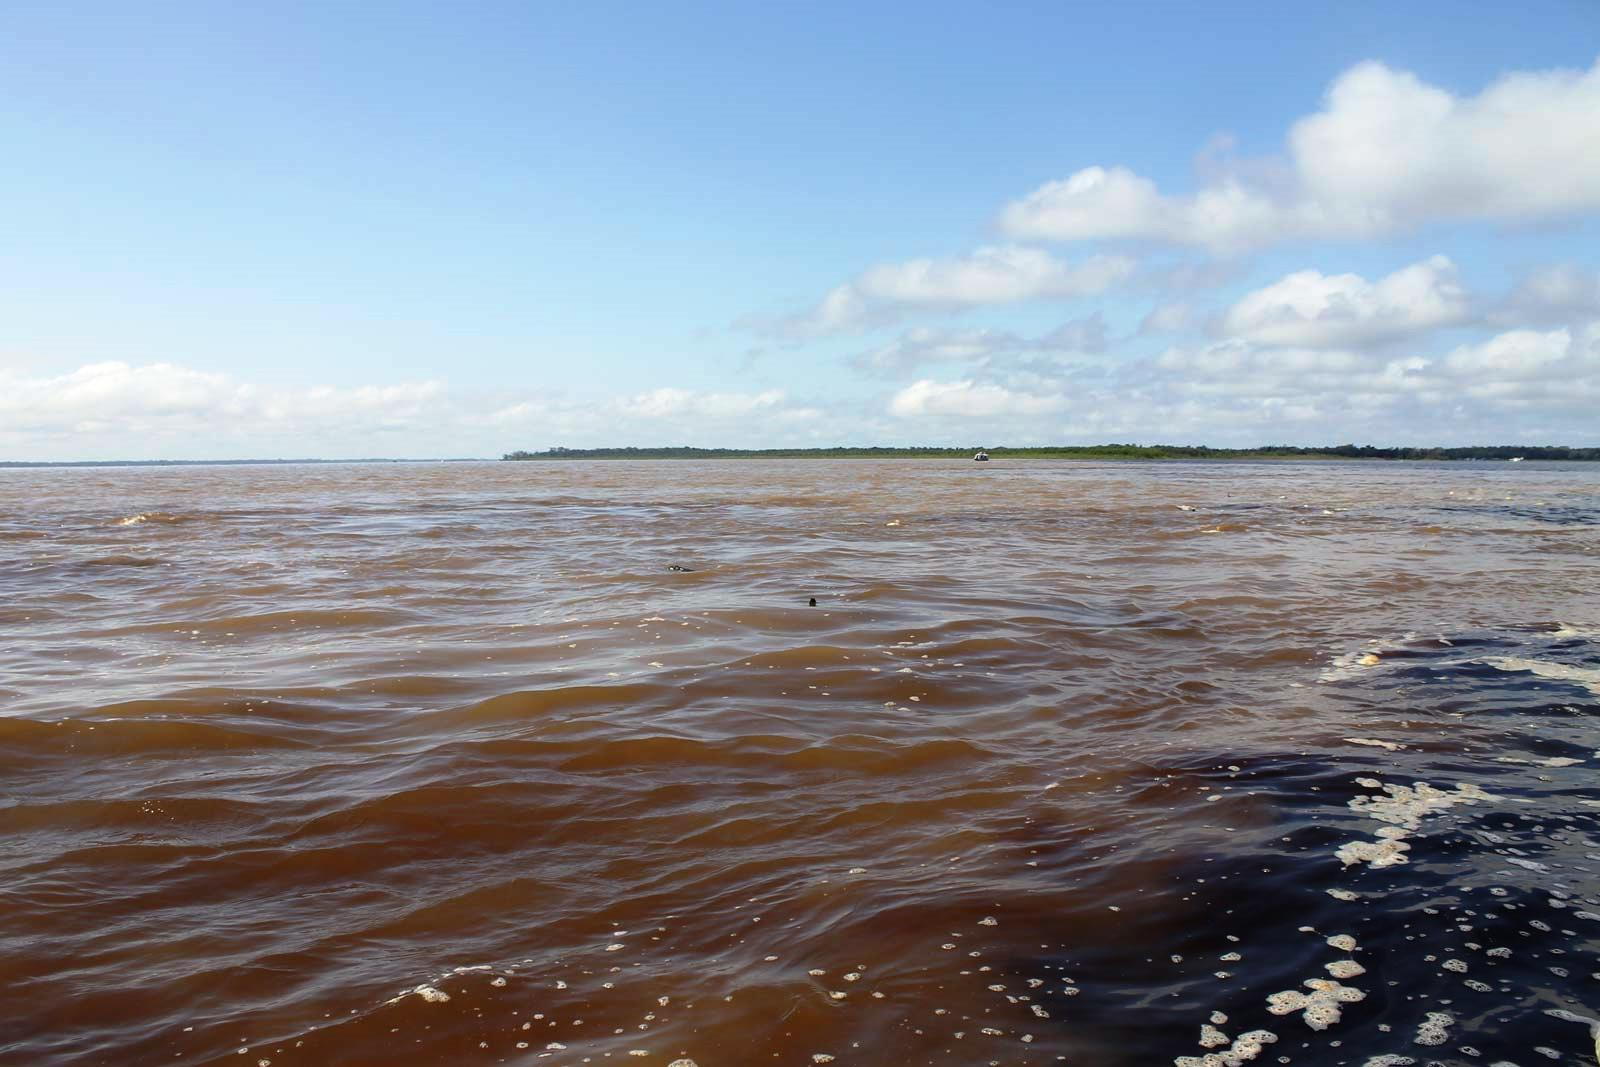 manaus - the meeting of waters